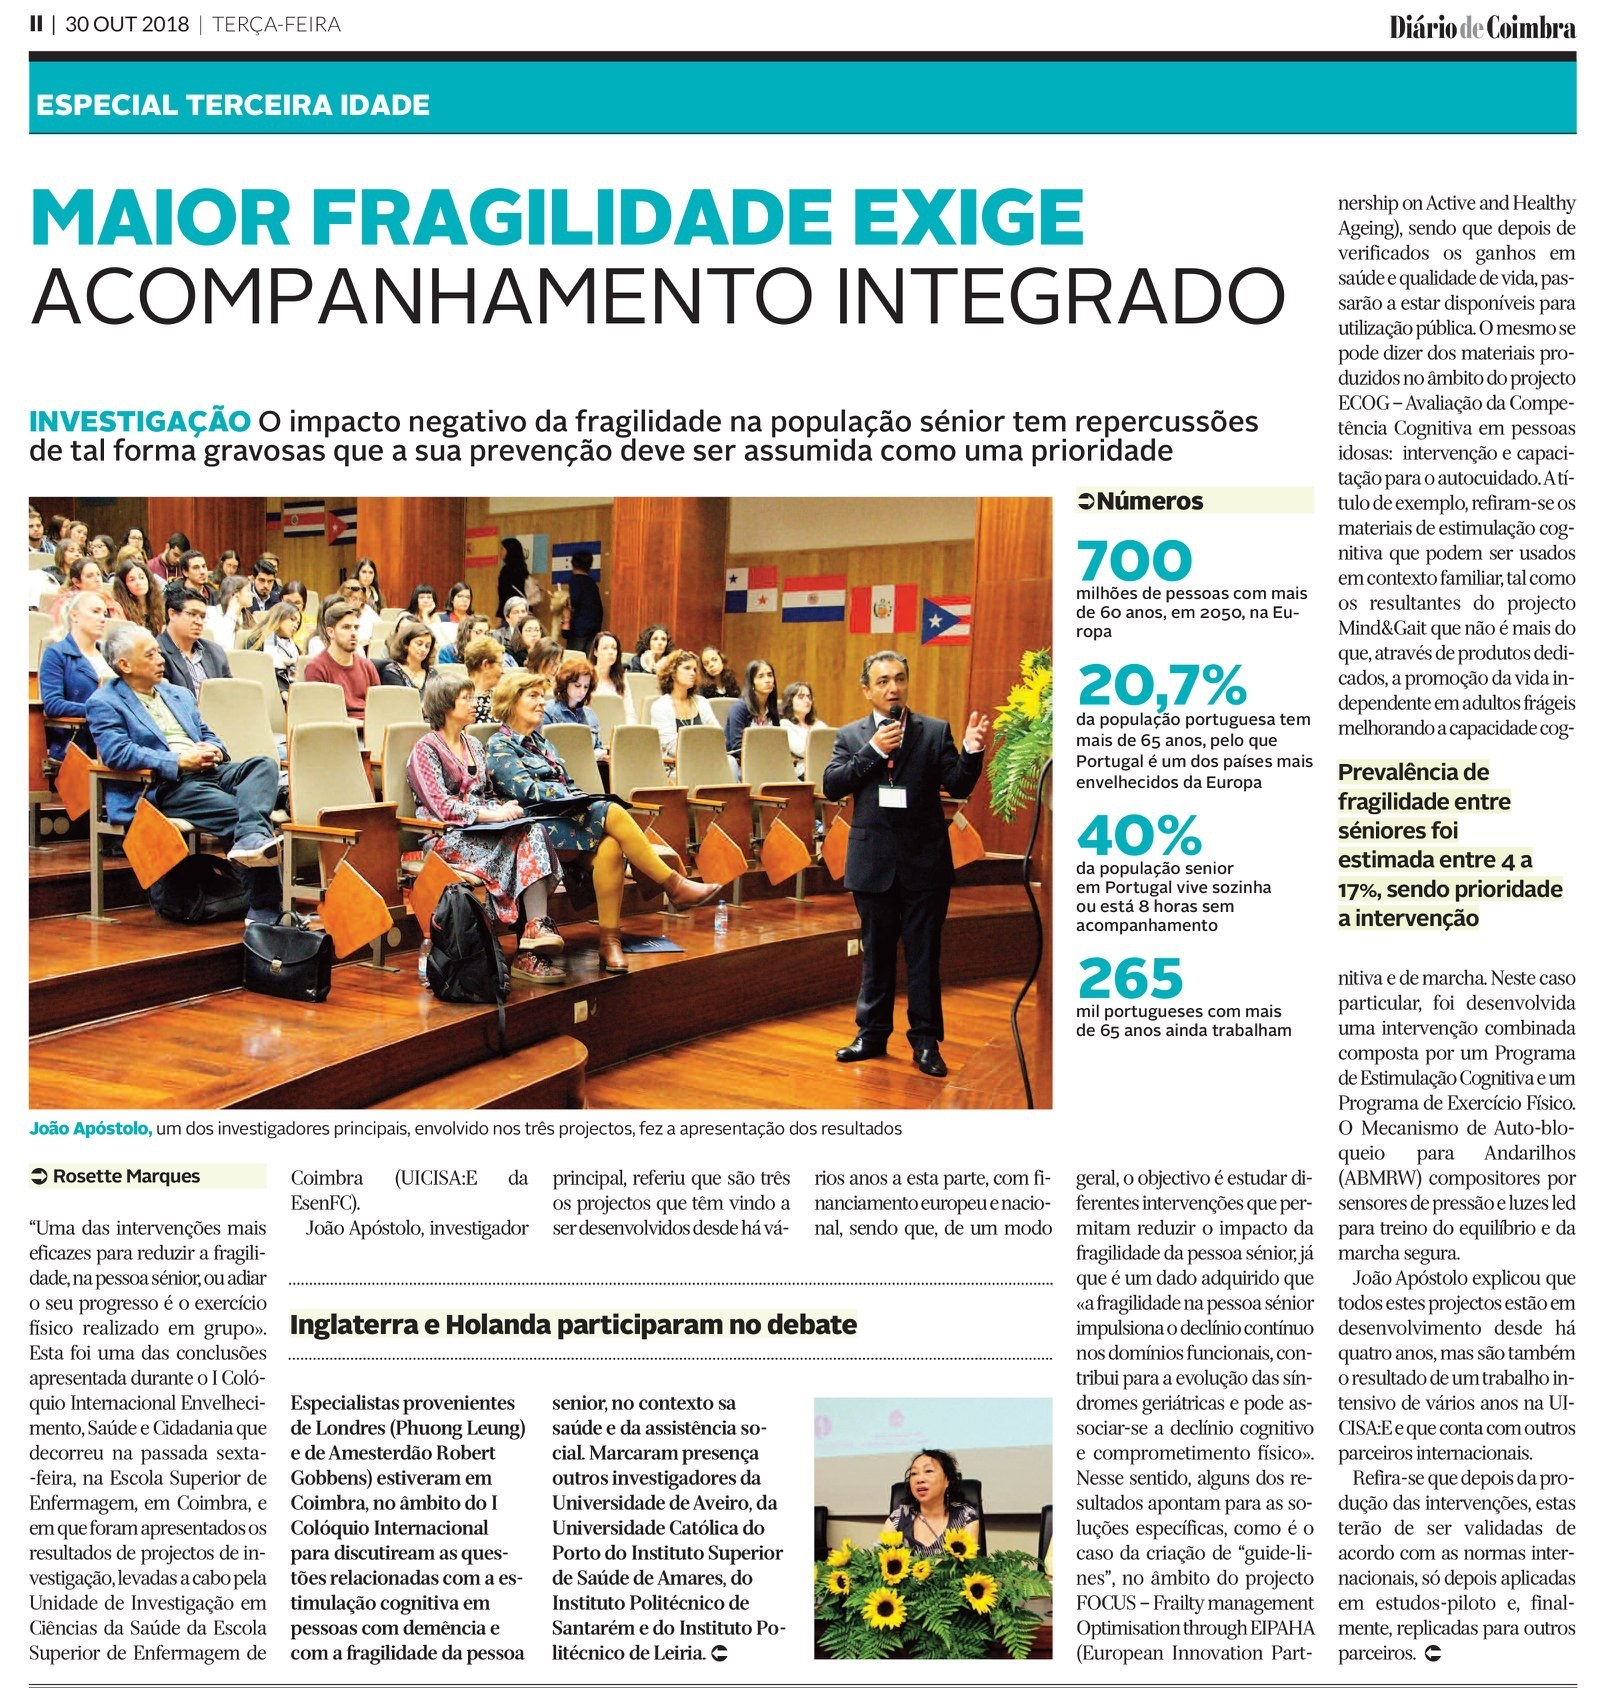 """1st International Colloquium """"Aging, Health and Citizenship"""" conference in Coimbra Portugal was on the Coimbra daily magazine."""